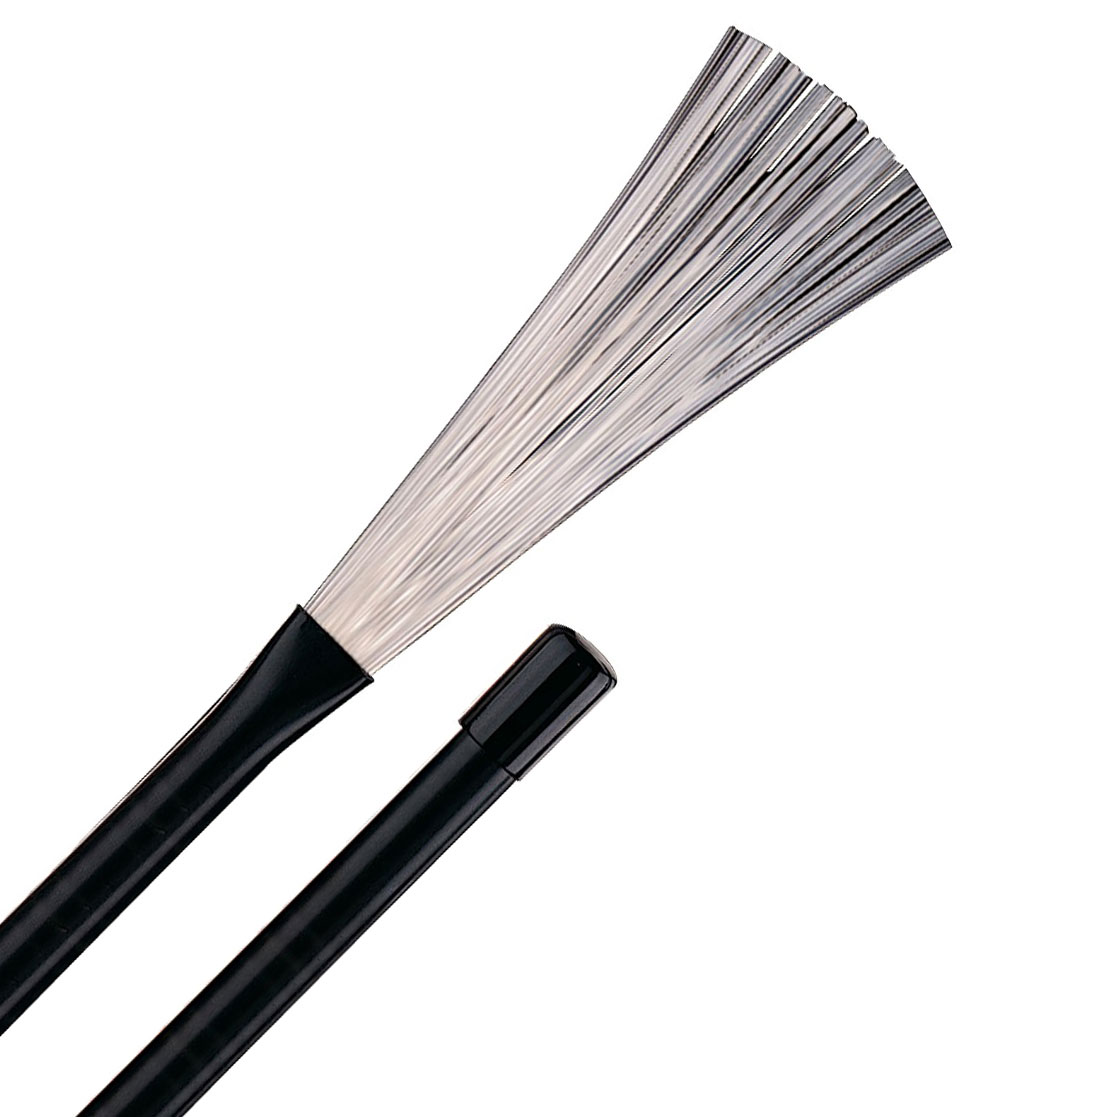 Promark Nylon Bristle Brushes